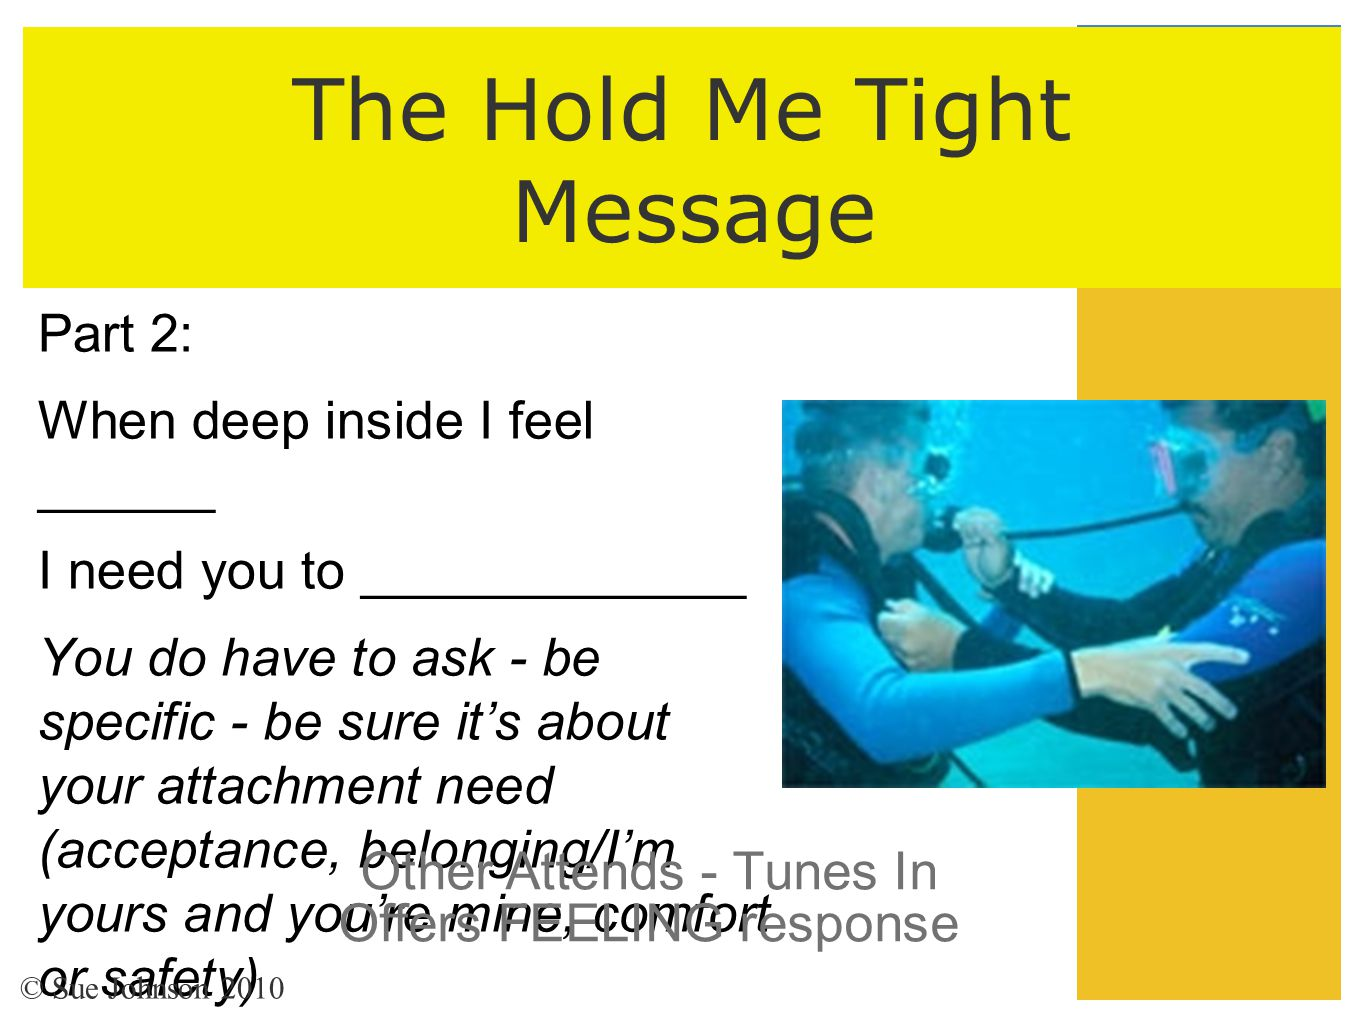 The Hold Me Tight Message